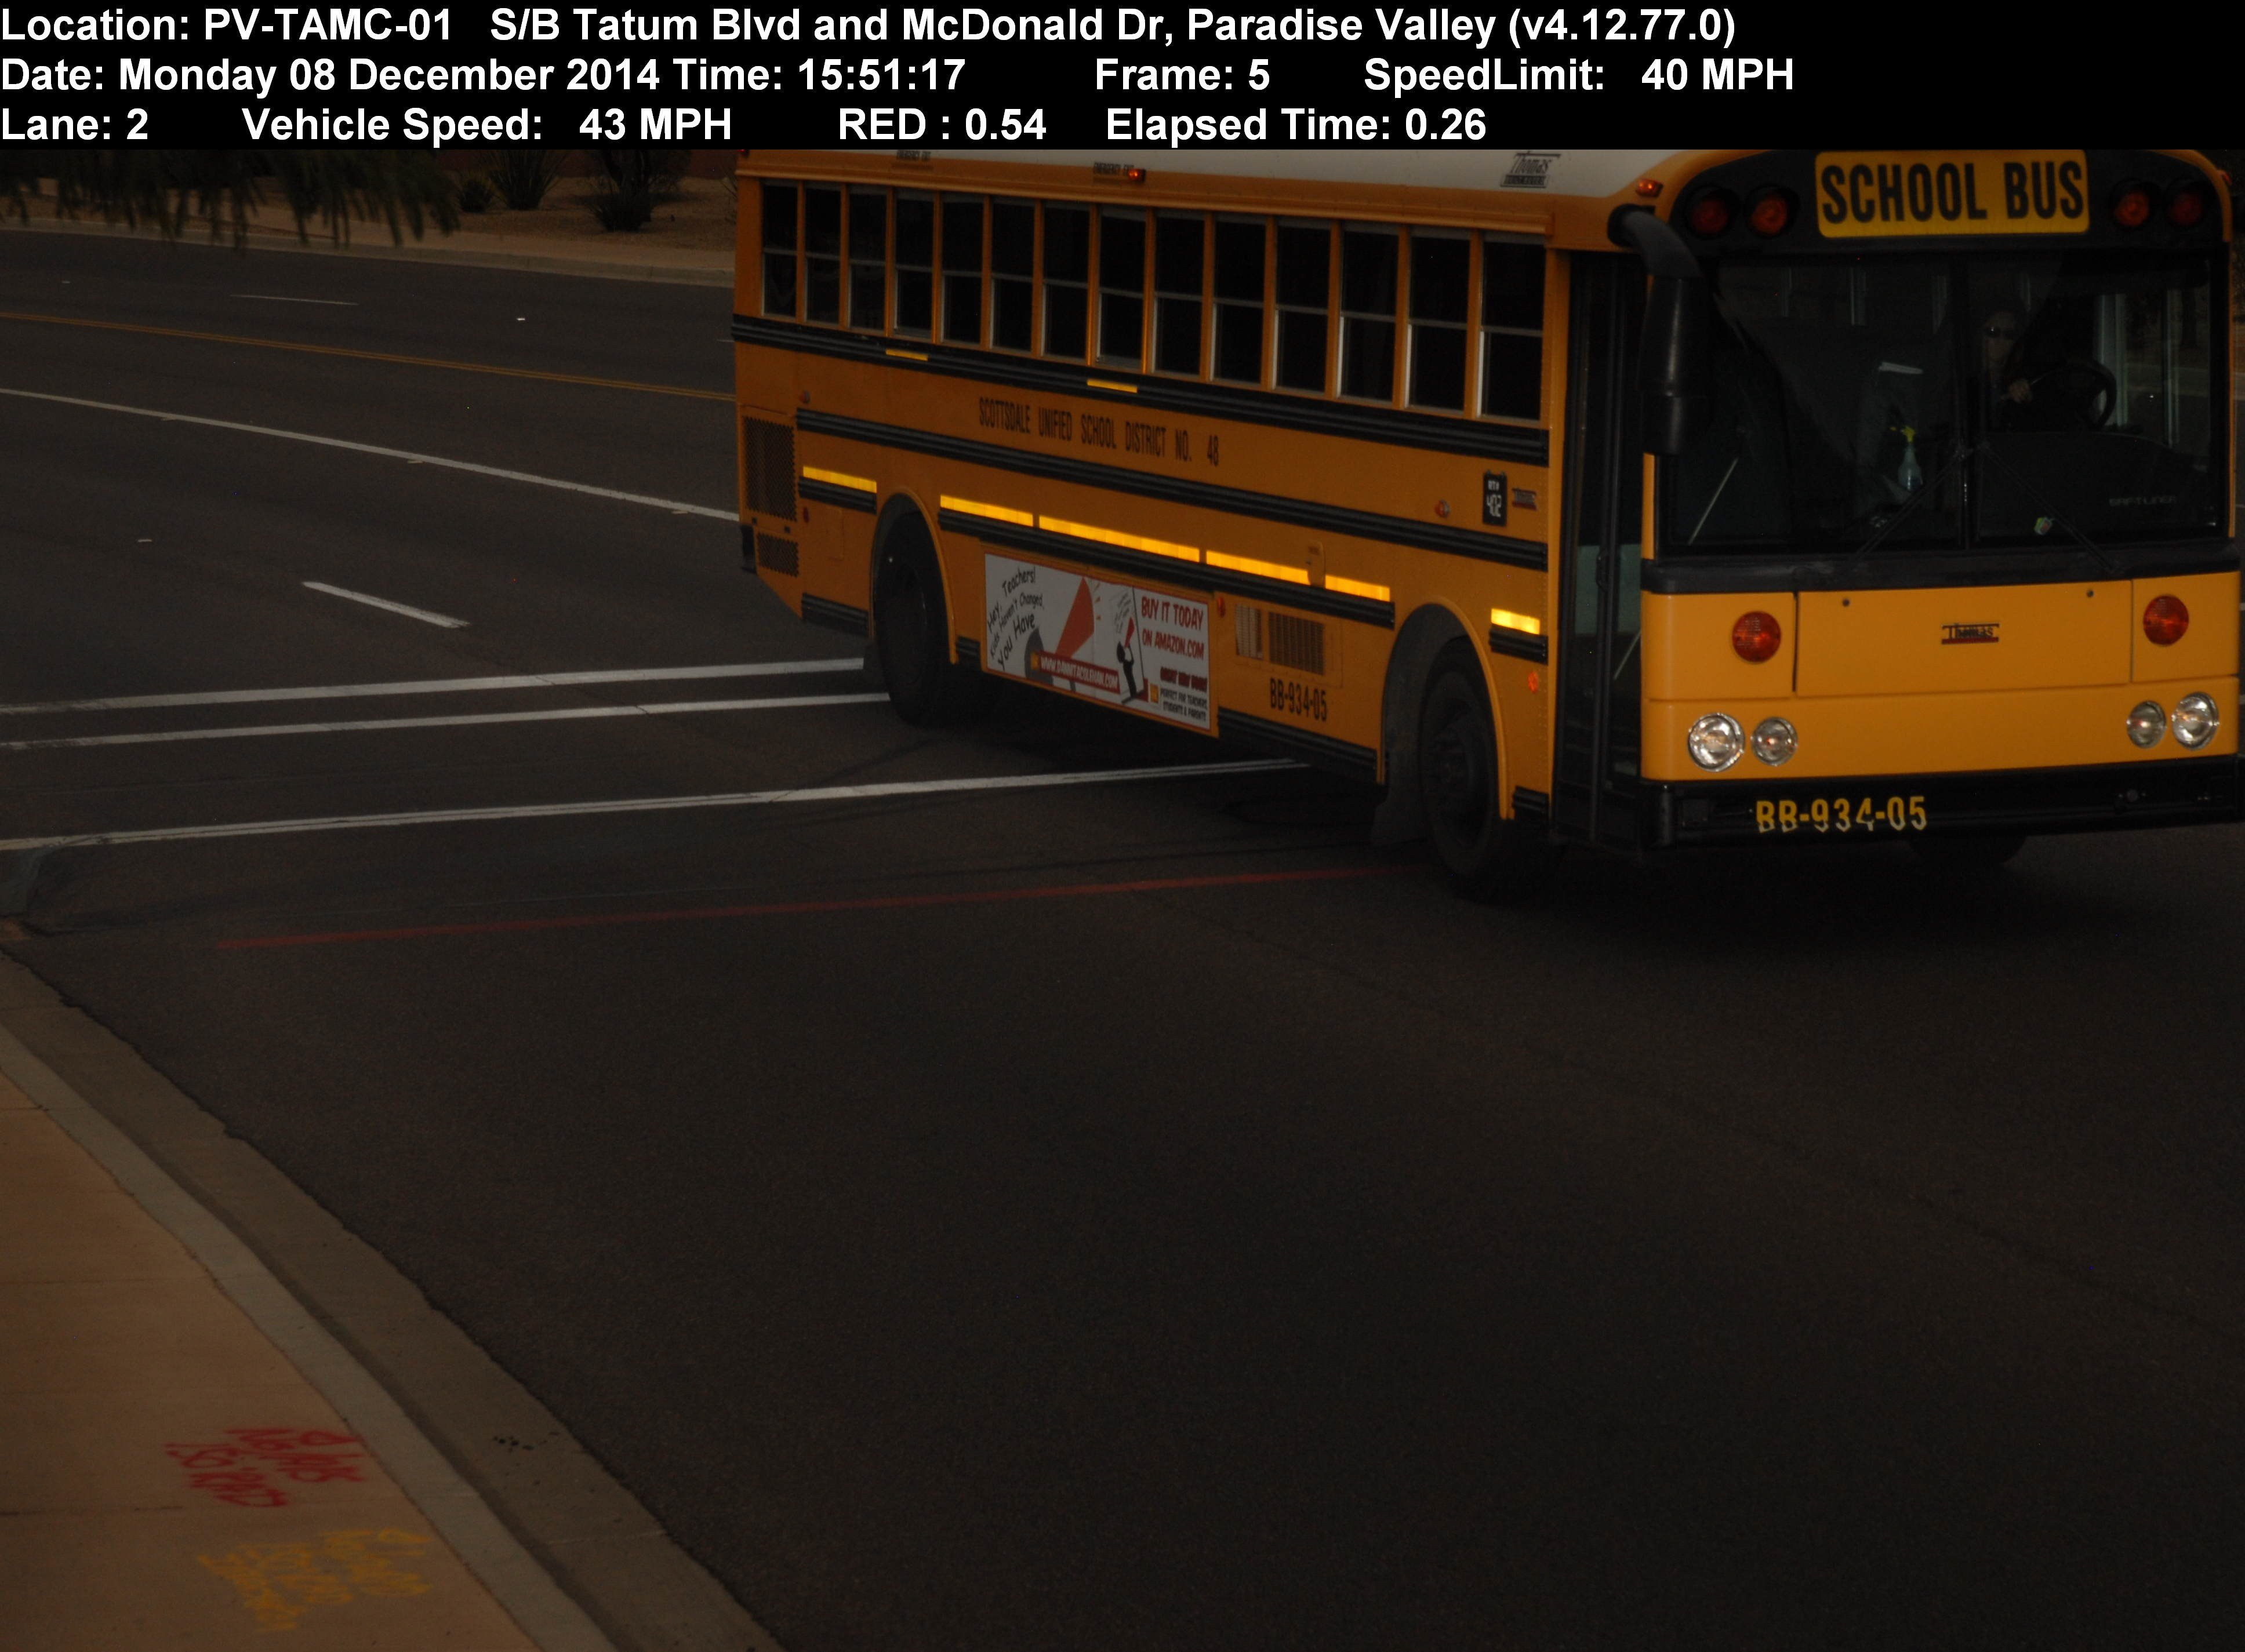 A Scottsdale Unified School bus runs a red light in December 2014. (Source: 3TV/CBS 5 public records request)